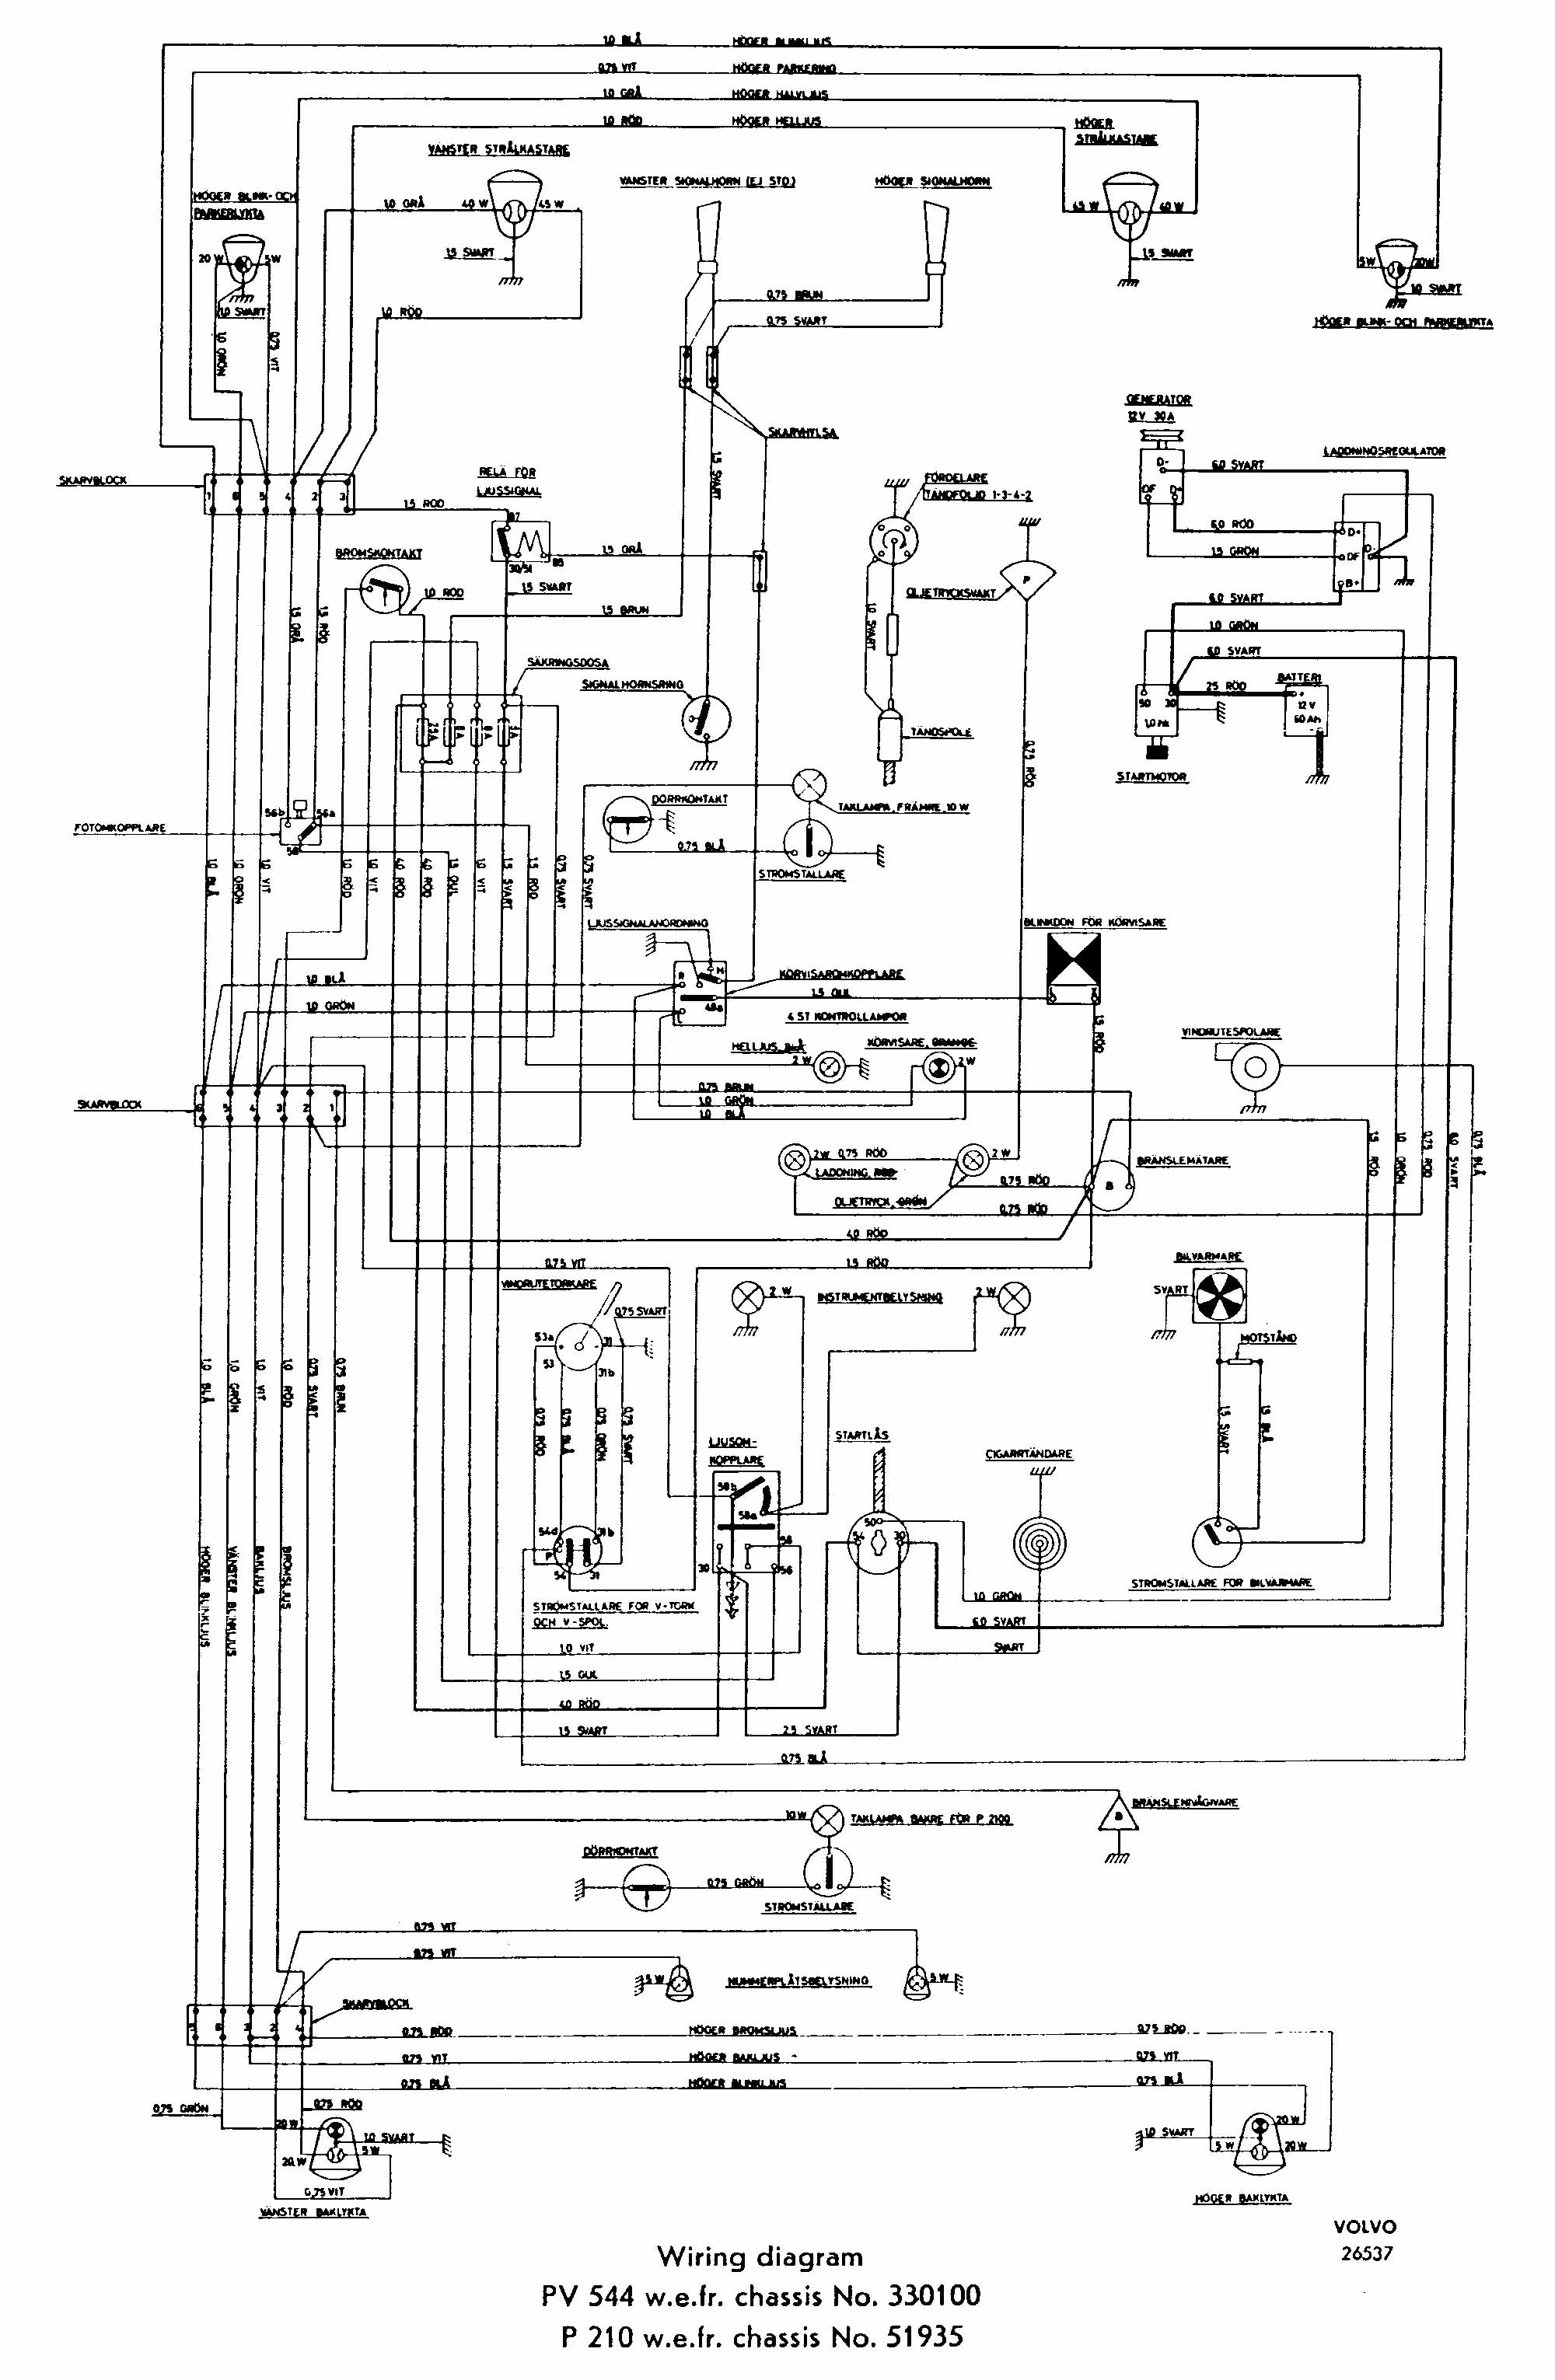 544 Wiring Diagram sw em 544 wiper info GM LS Wiring Diagram at mifinder.co